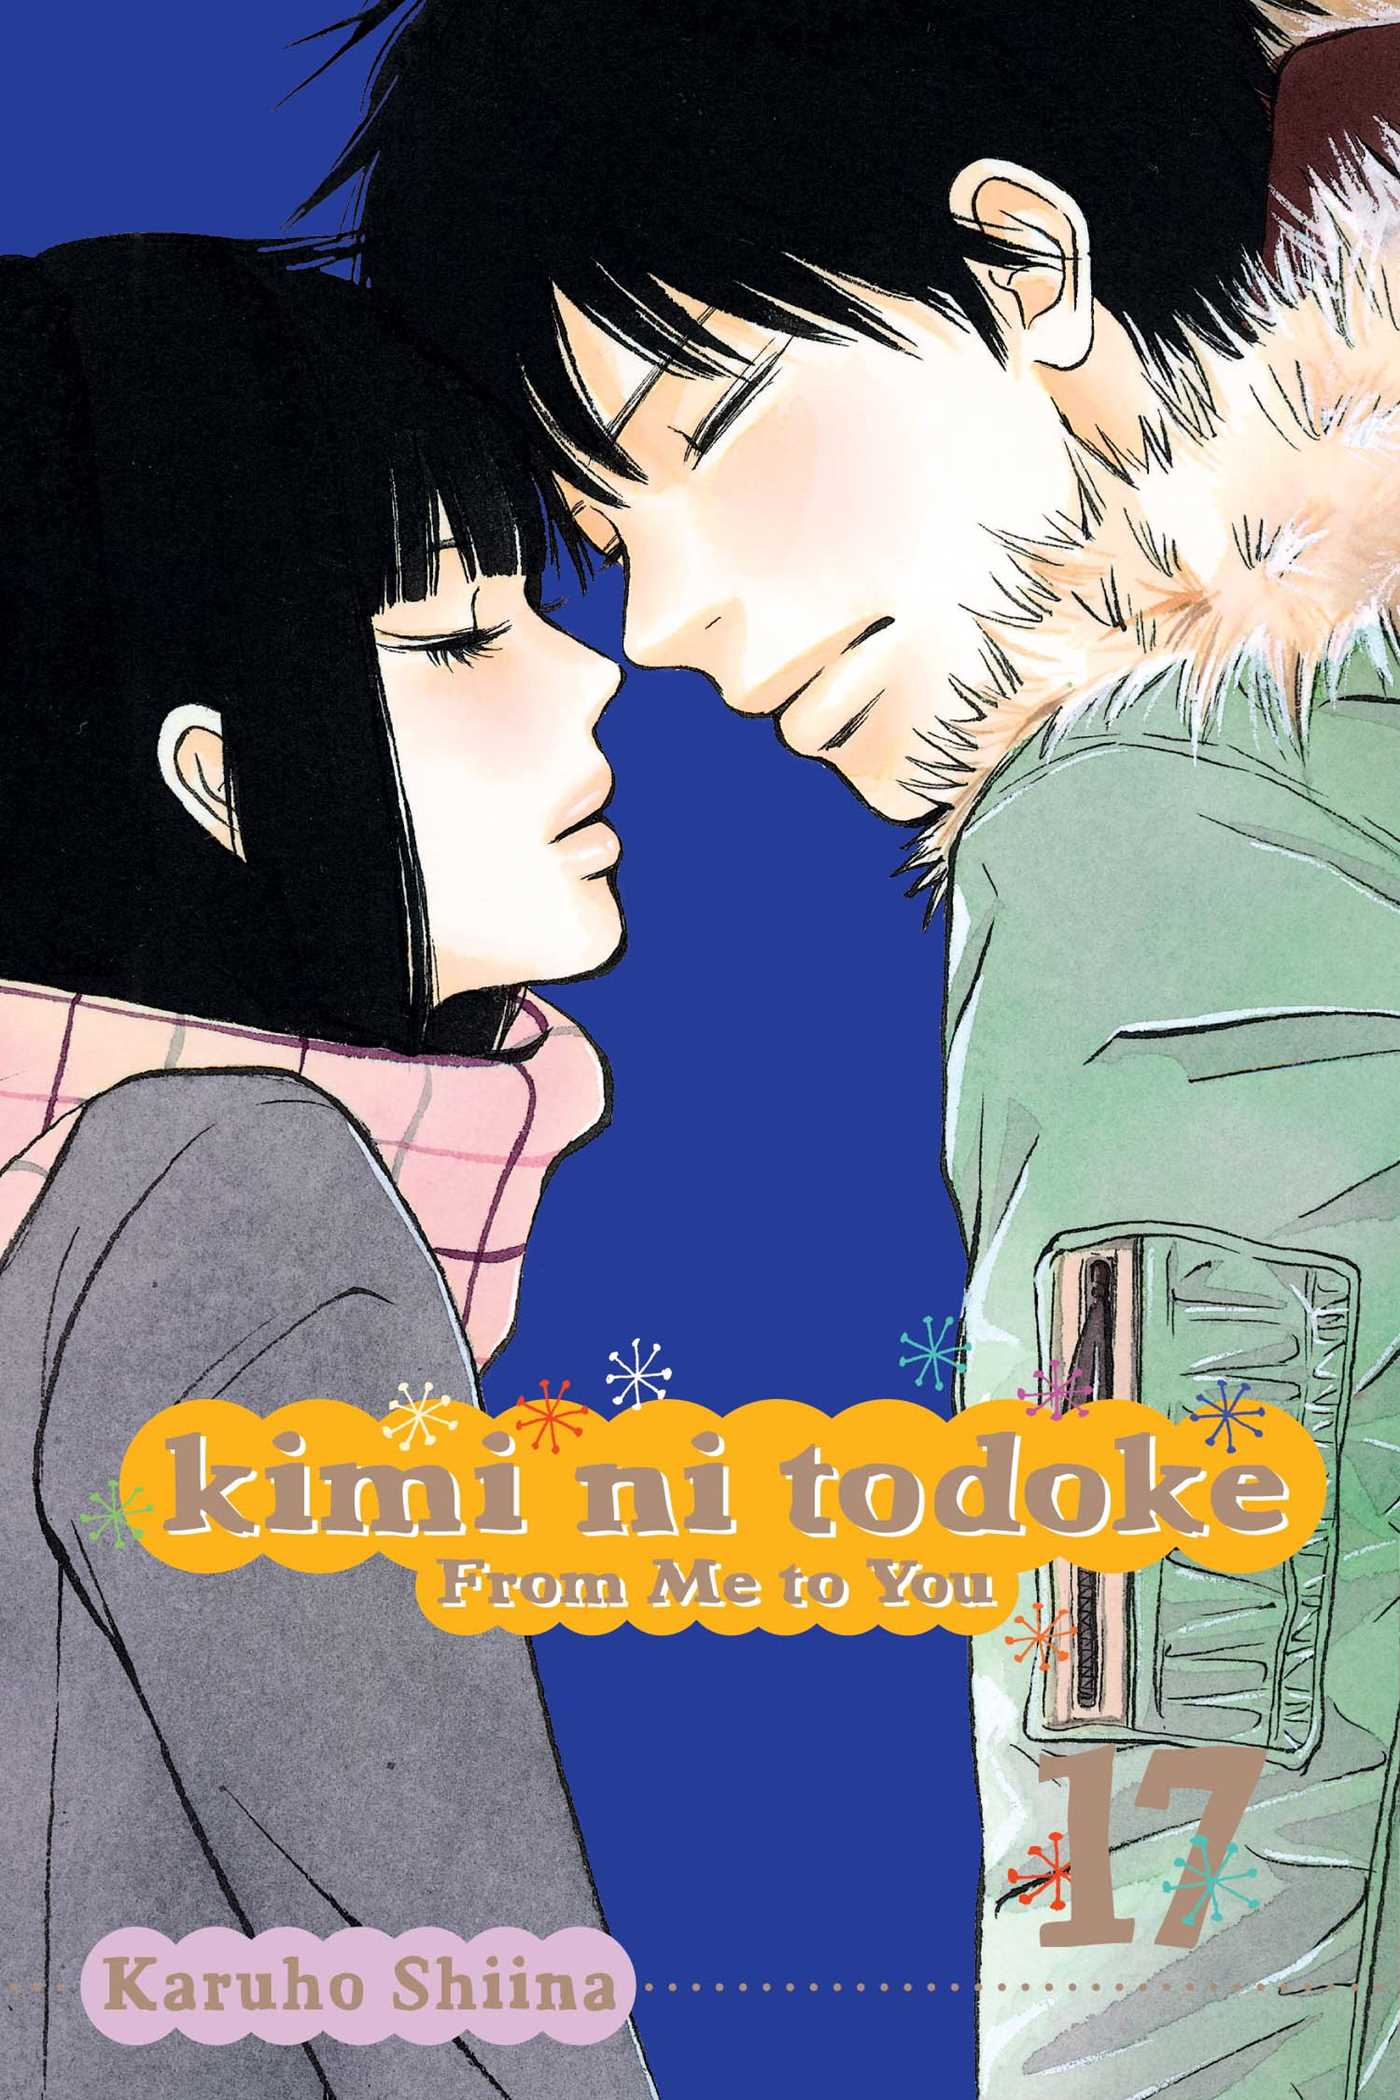 Kimi-ni-todoke-from-me-to-you-vol-17-9781421554785_hr